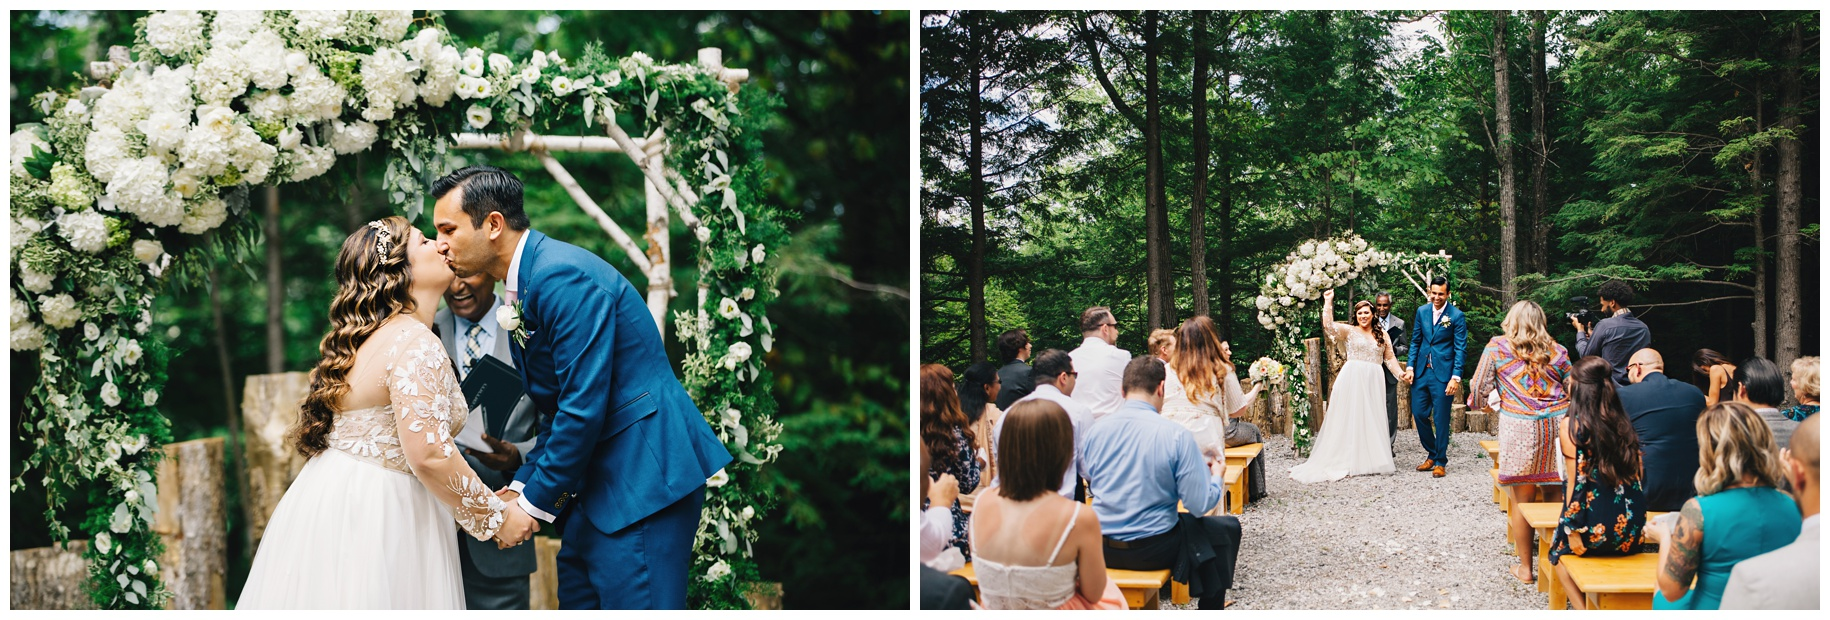 Maine_wedding_photographer_Granite_Ridge_Estate_mountain_barn-011